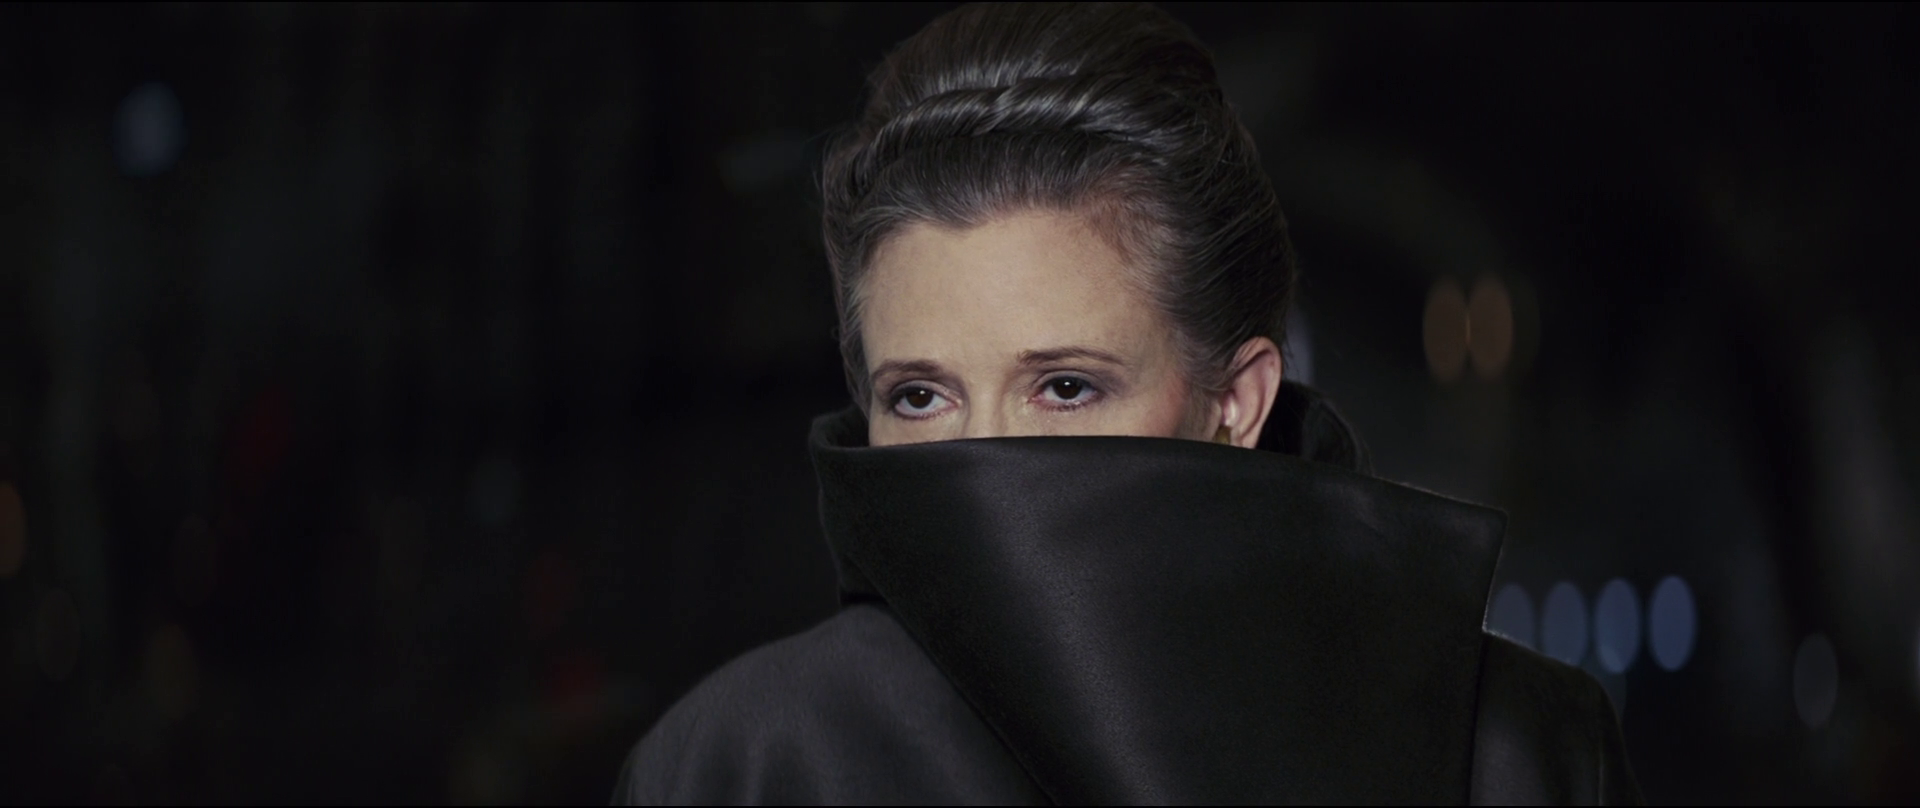 Carrie Fisher as General Leia Organa in Star Wars: The Last Jedi, a franchise which deserved so many better endings